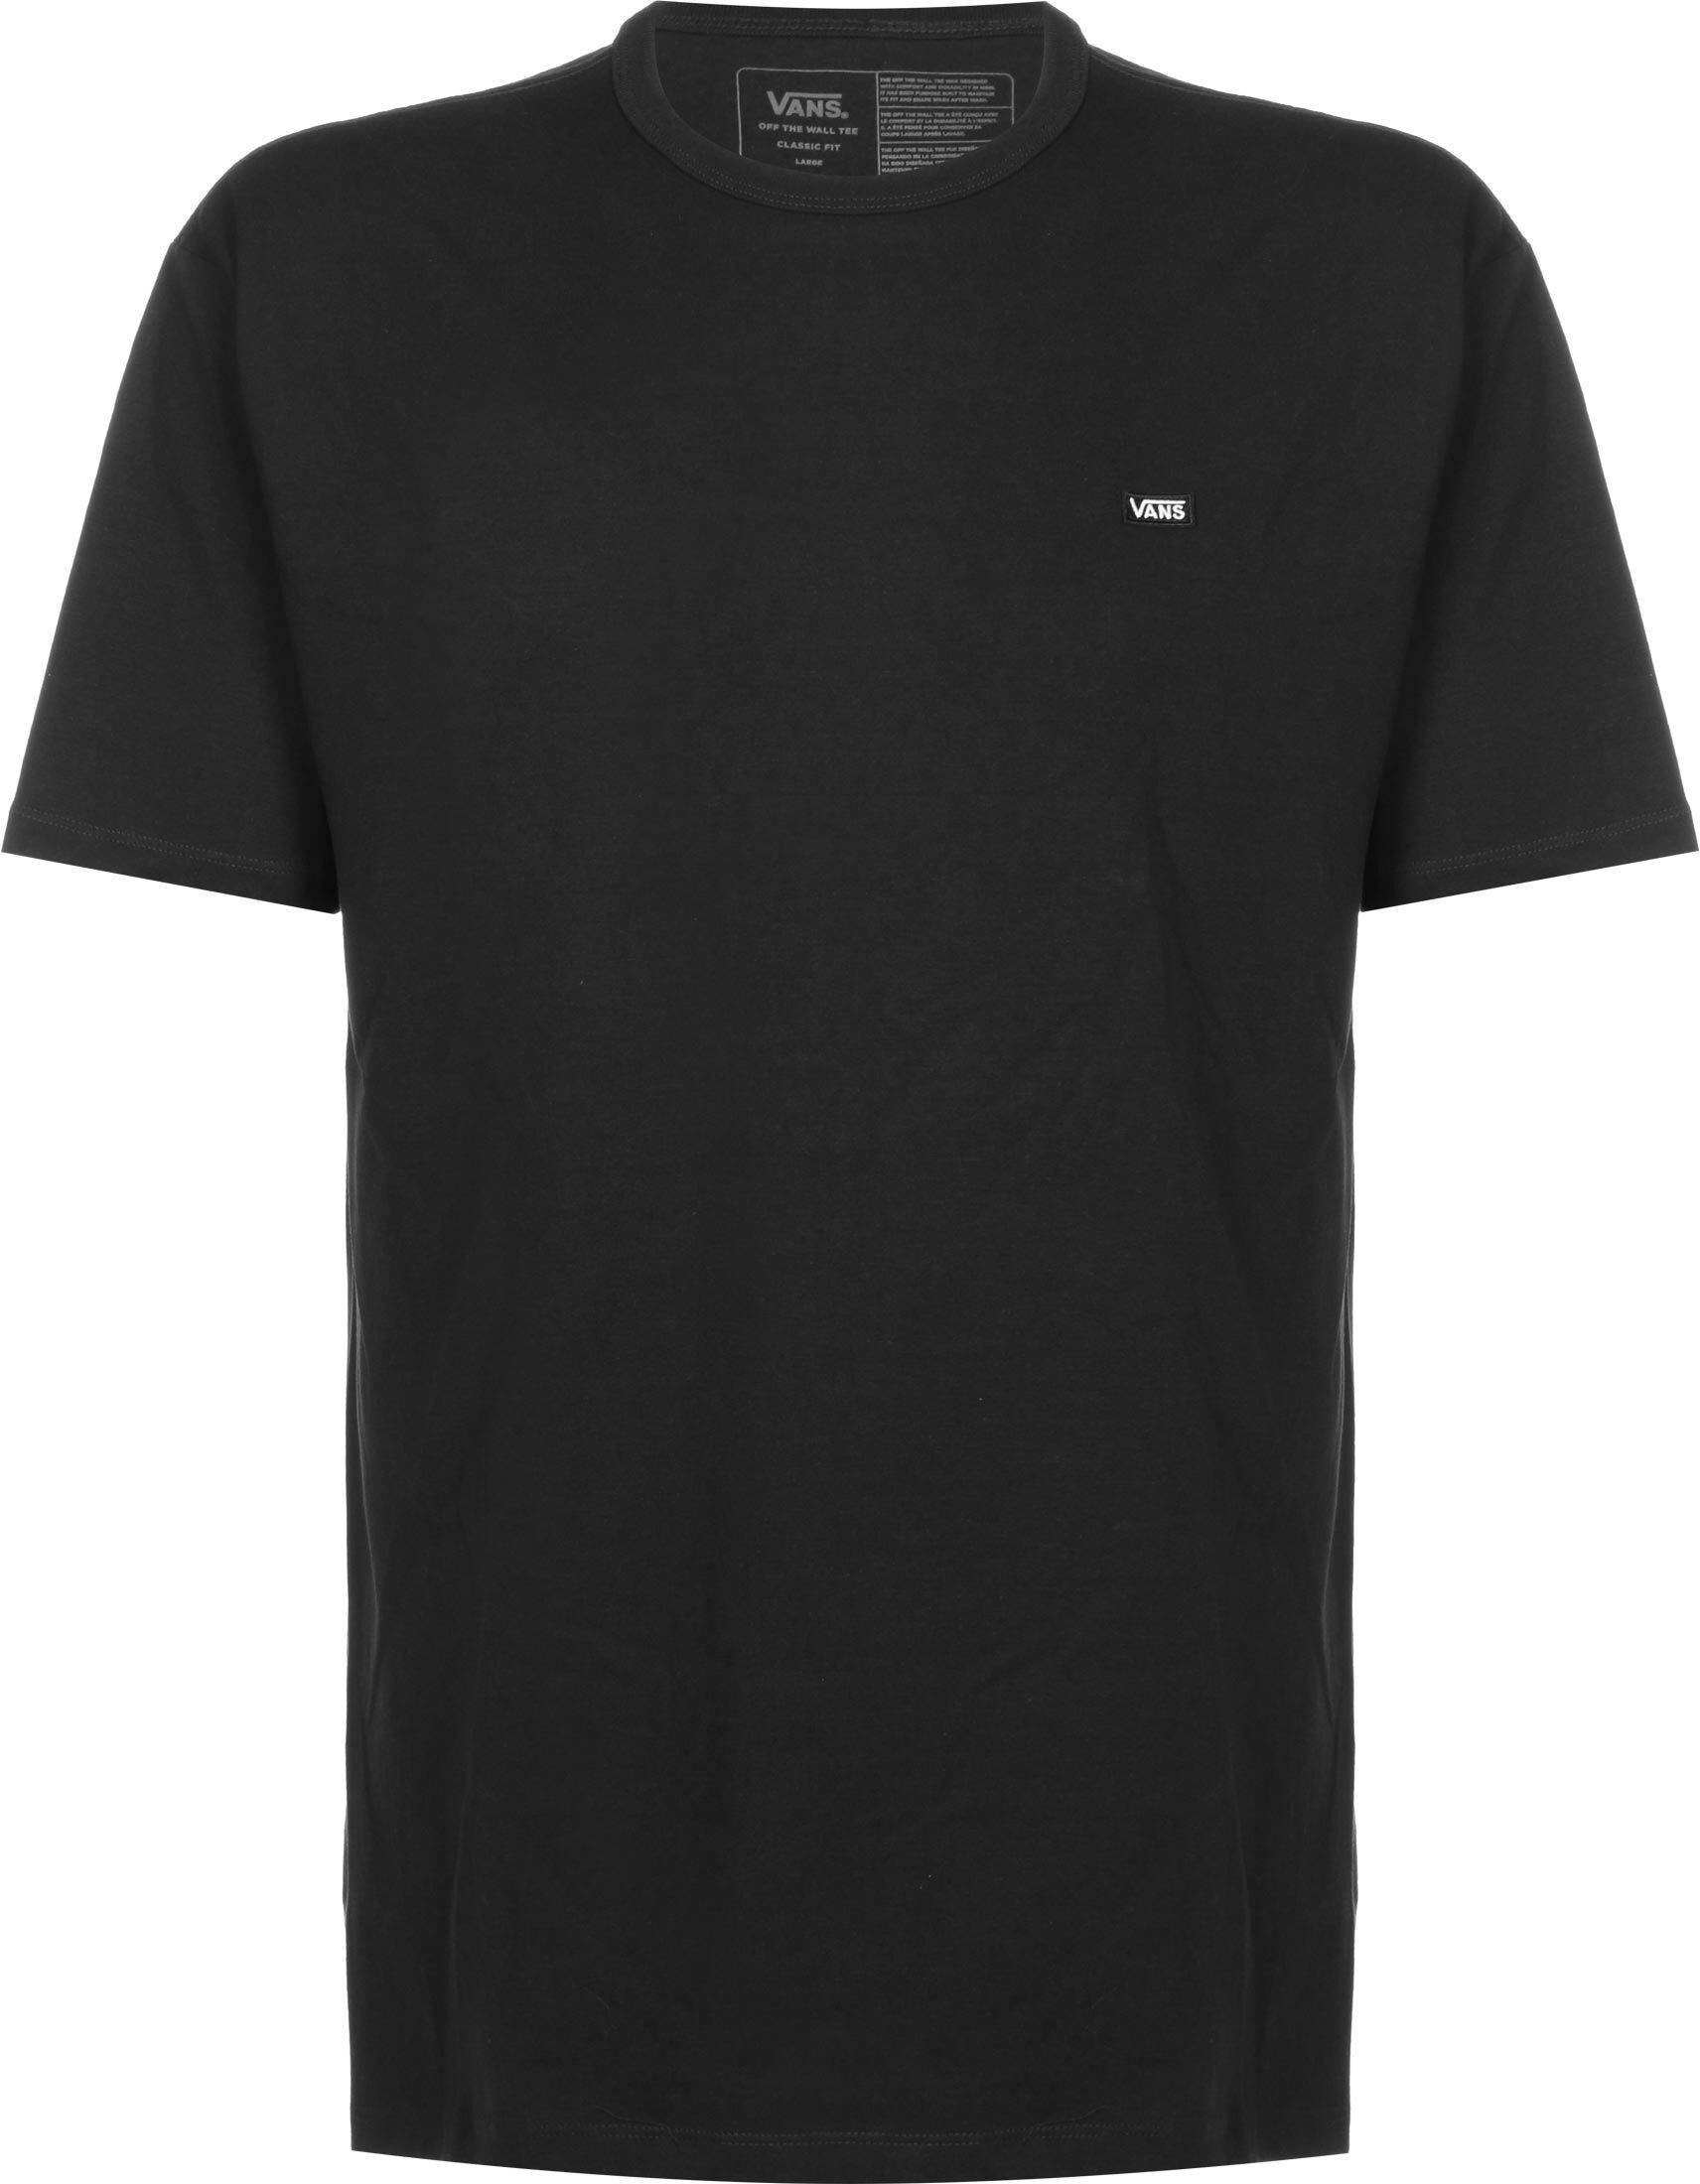 Vans Off the Wall, taille XL, homme, noir